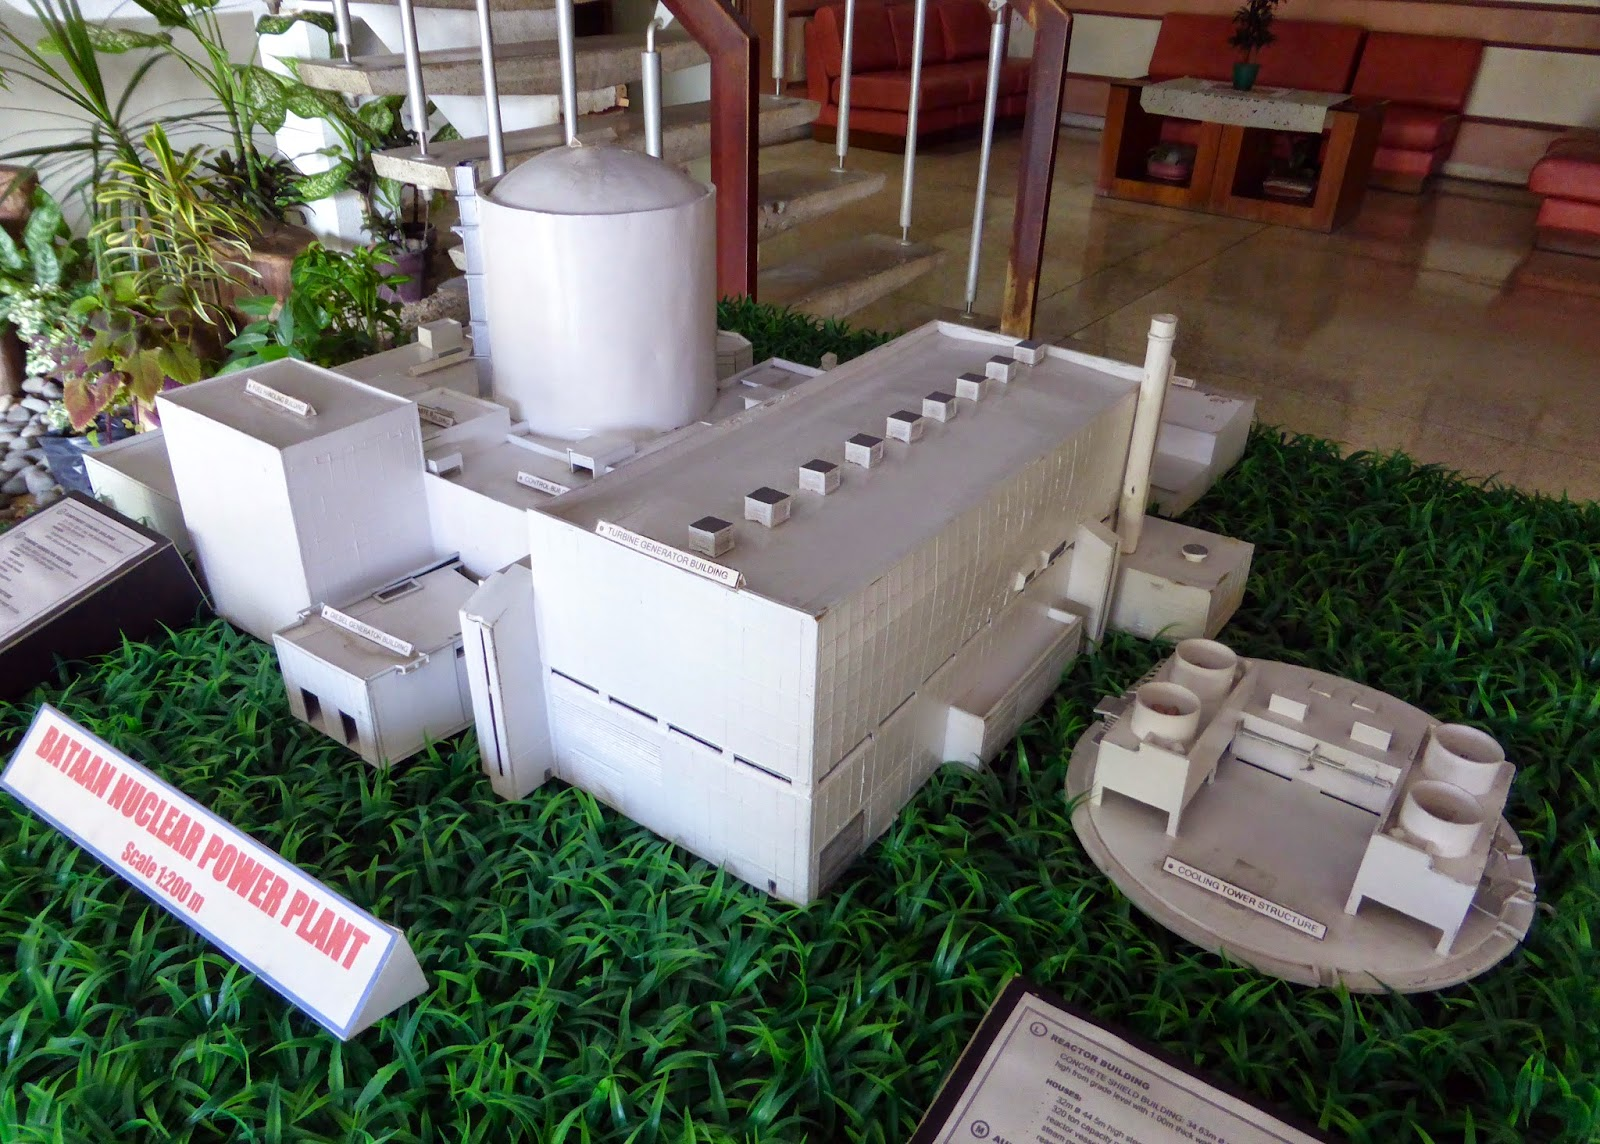 naquem bataan nuclear power plant bnpp symbolic icon for the scale model of bnpp